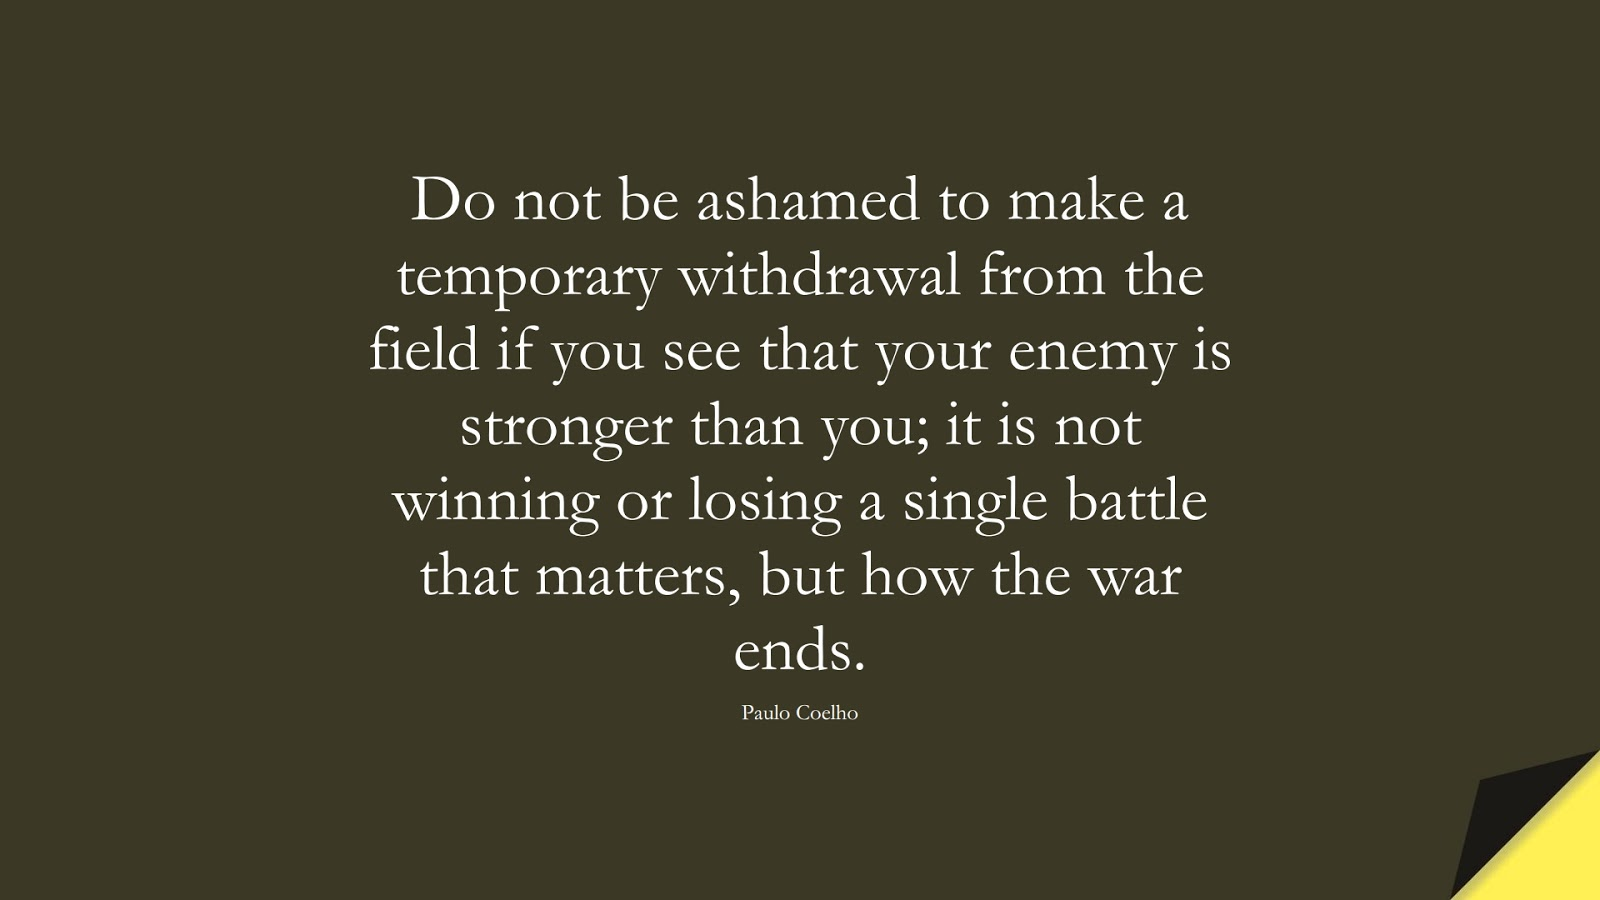 Do not be ashamed to make a temporary withdrawal from the field if you see that your enemy is stronger than you; it is not winning or losing a single battle that matters, but how the war ends. (Paulo Coelho);  #NeverGiveUpQuotes